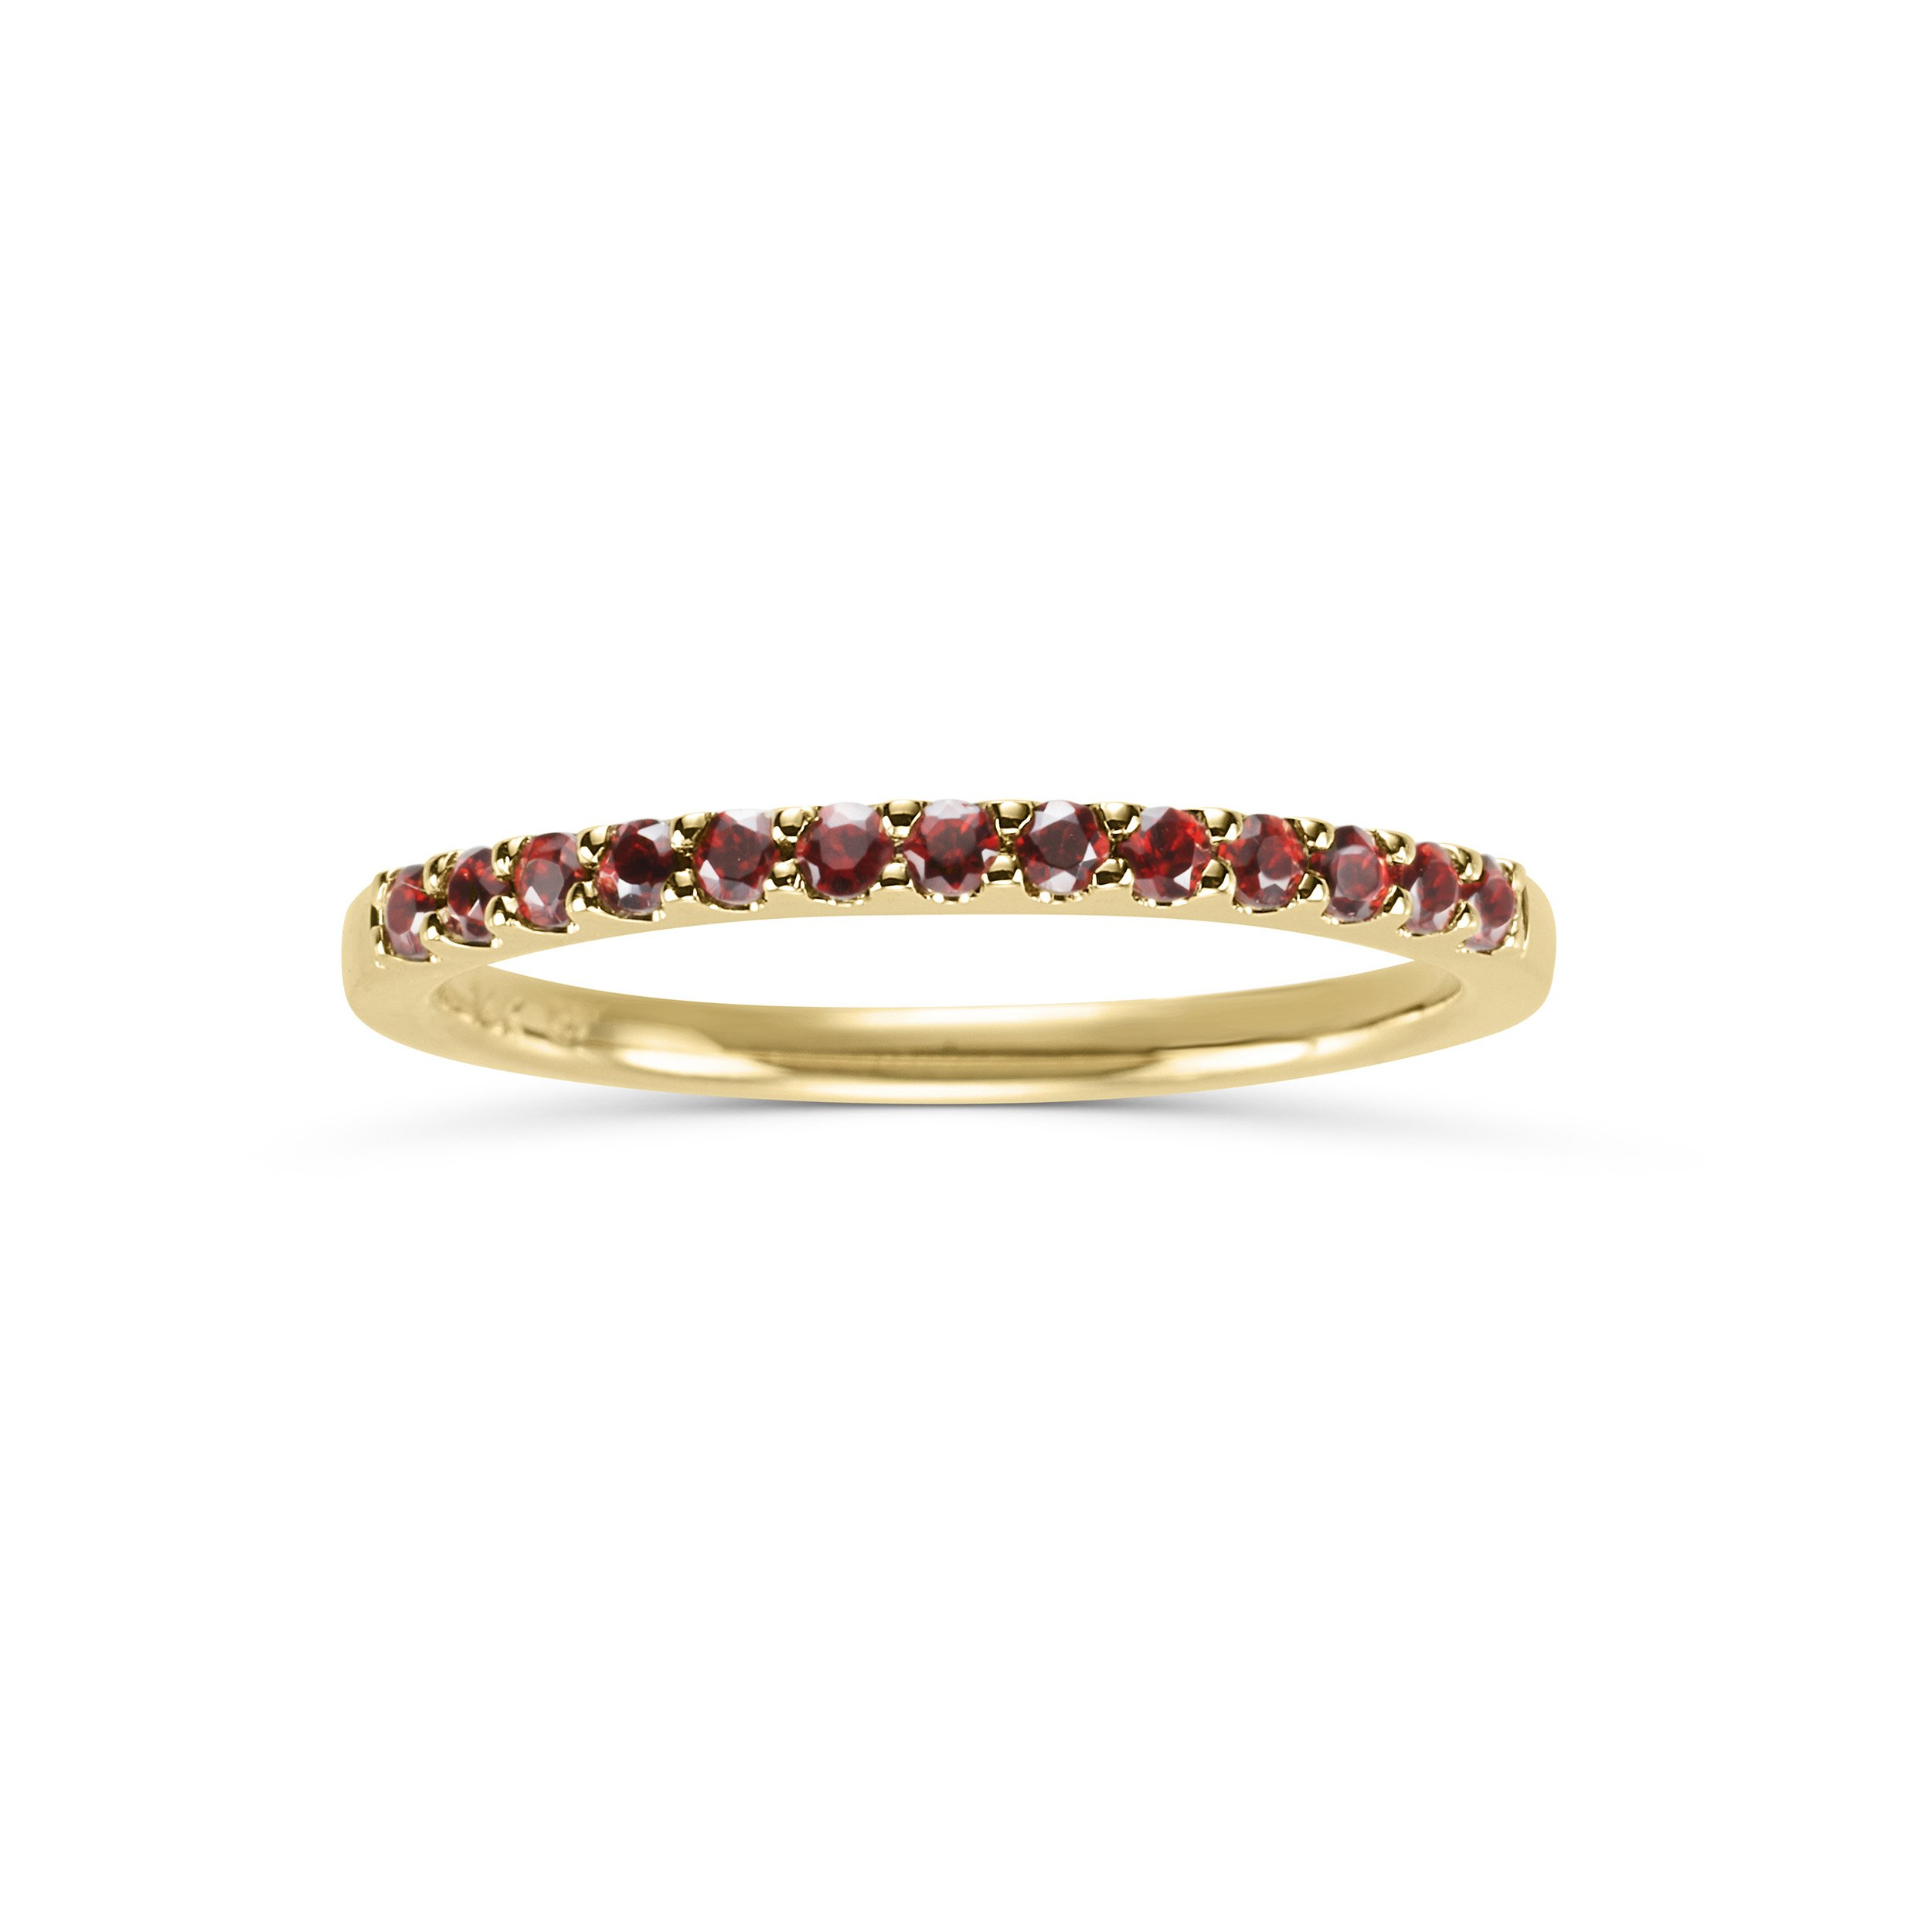 14K White Gold Genuine Garnet Stackable 2MM Wedding Anniversary Band Ring- January Birthstone (1.04 Tgw.)